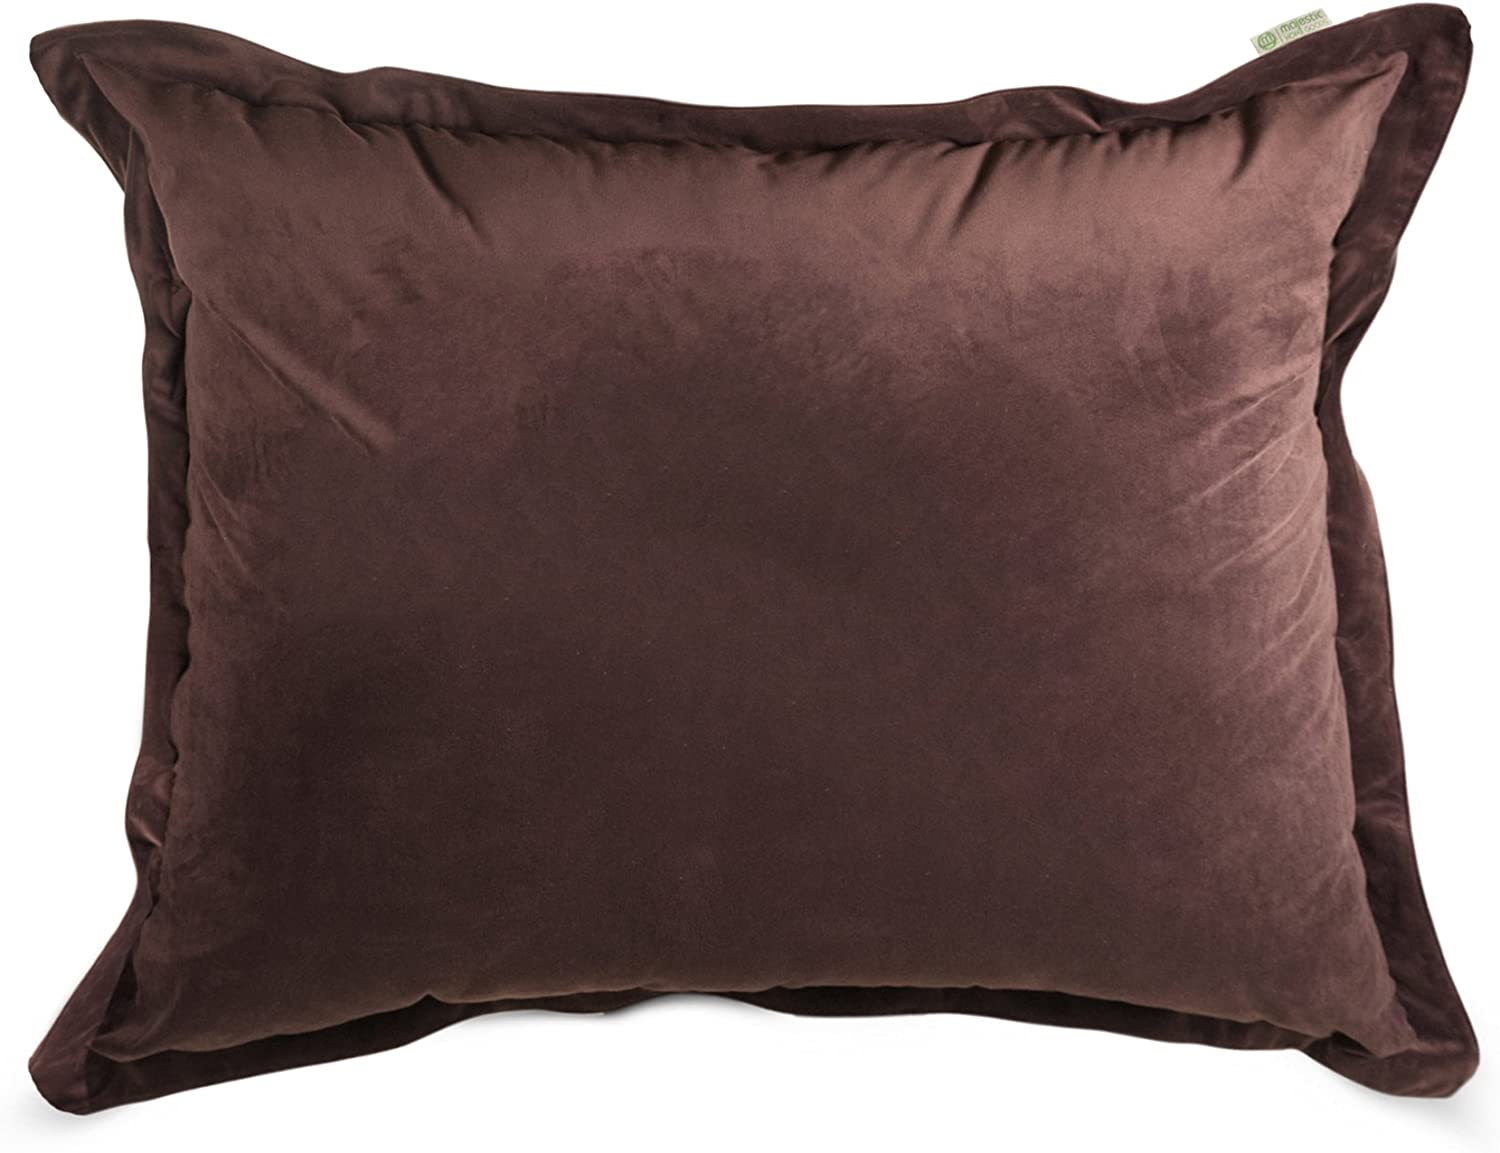 Majestic Home Goods Faux Suede Floor Pillow